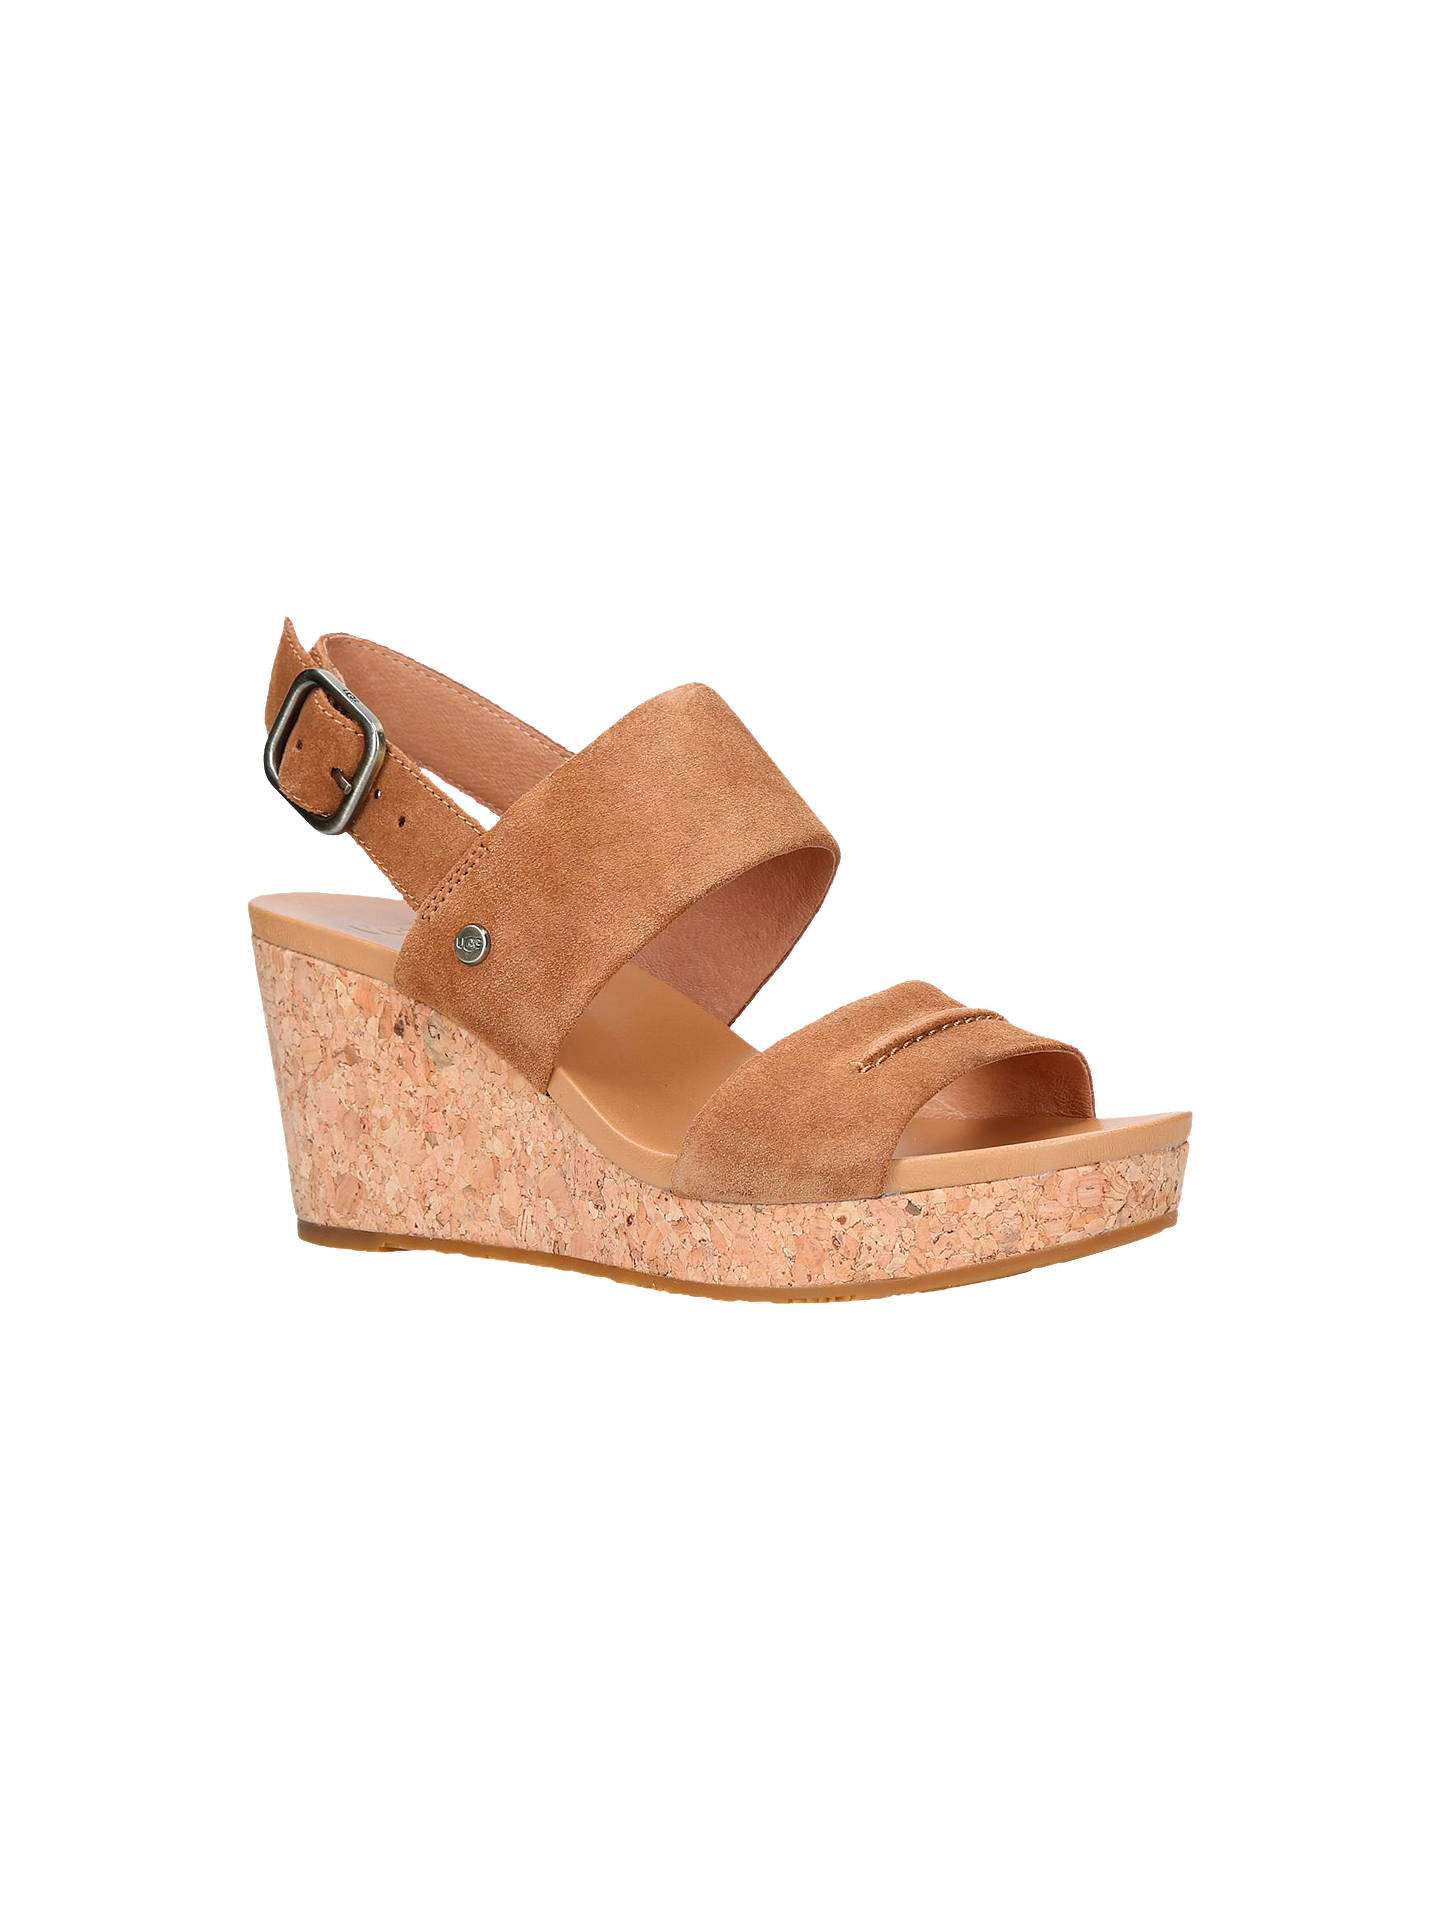 42a13626998 UGG Elena II Wedge Heel Sandals, Brown Suede at John Lewis & Partners